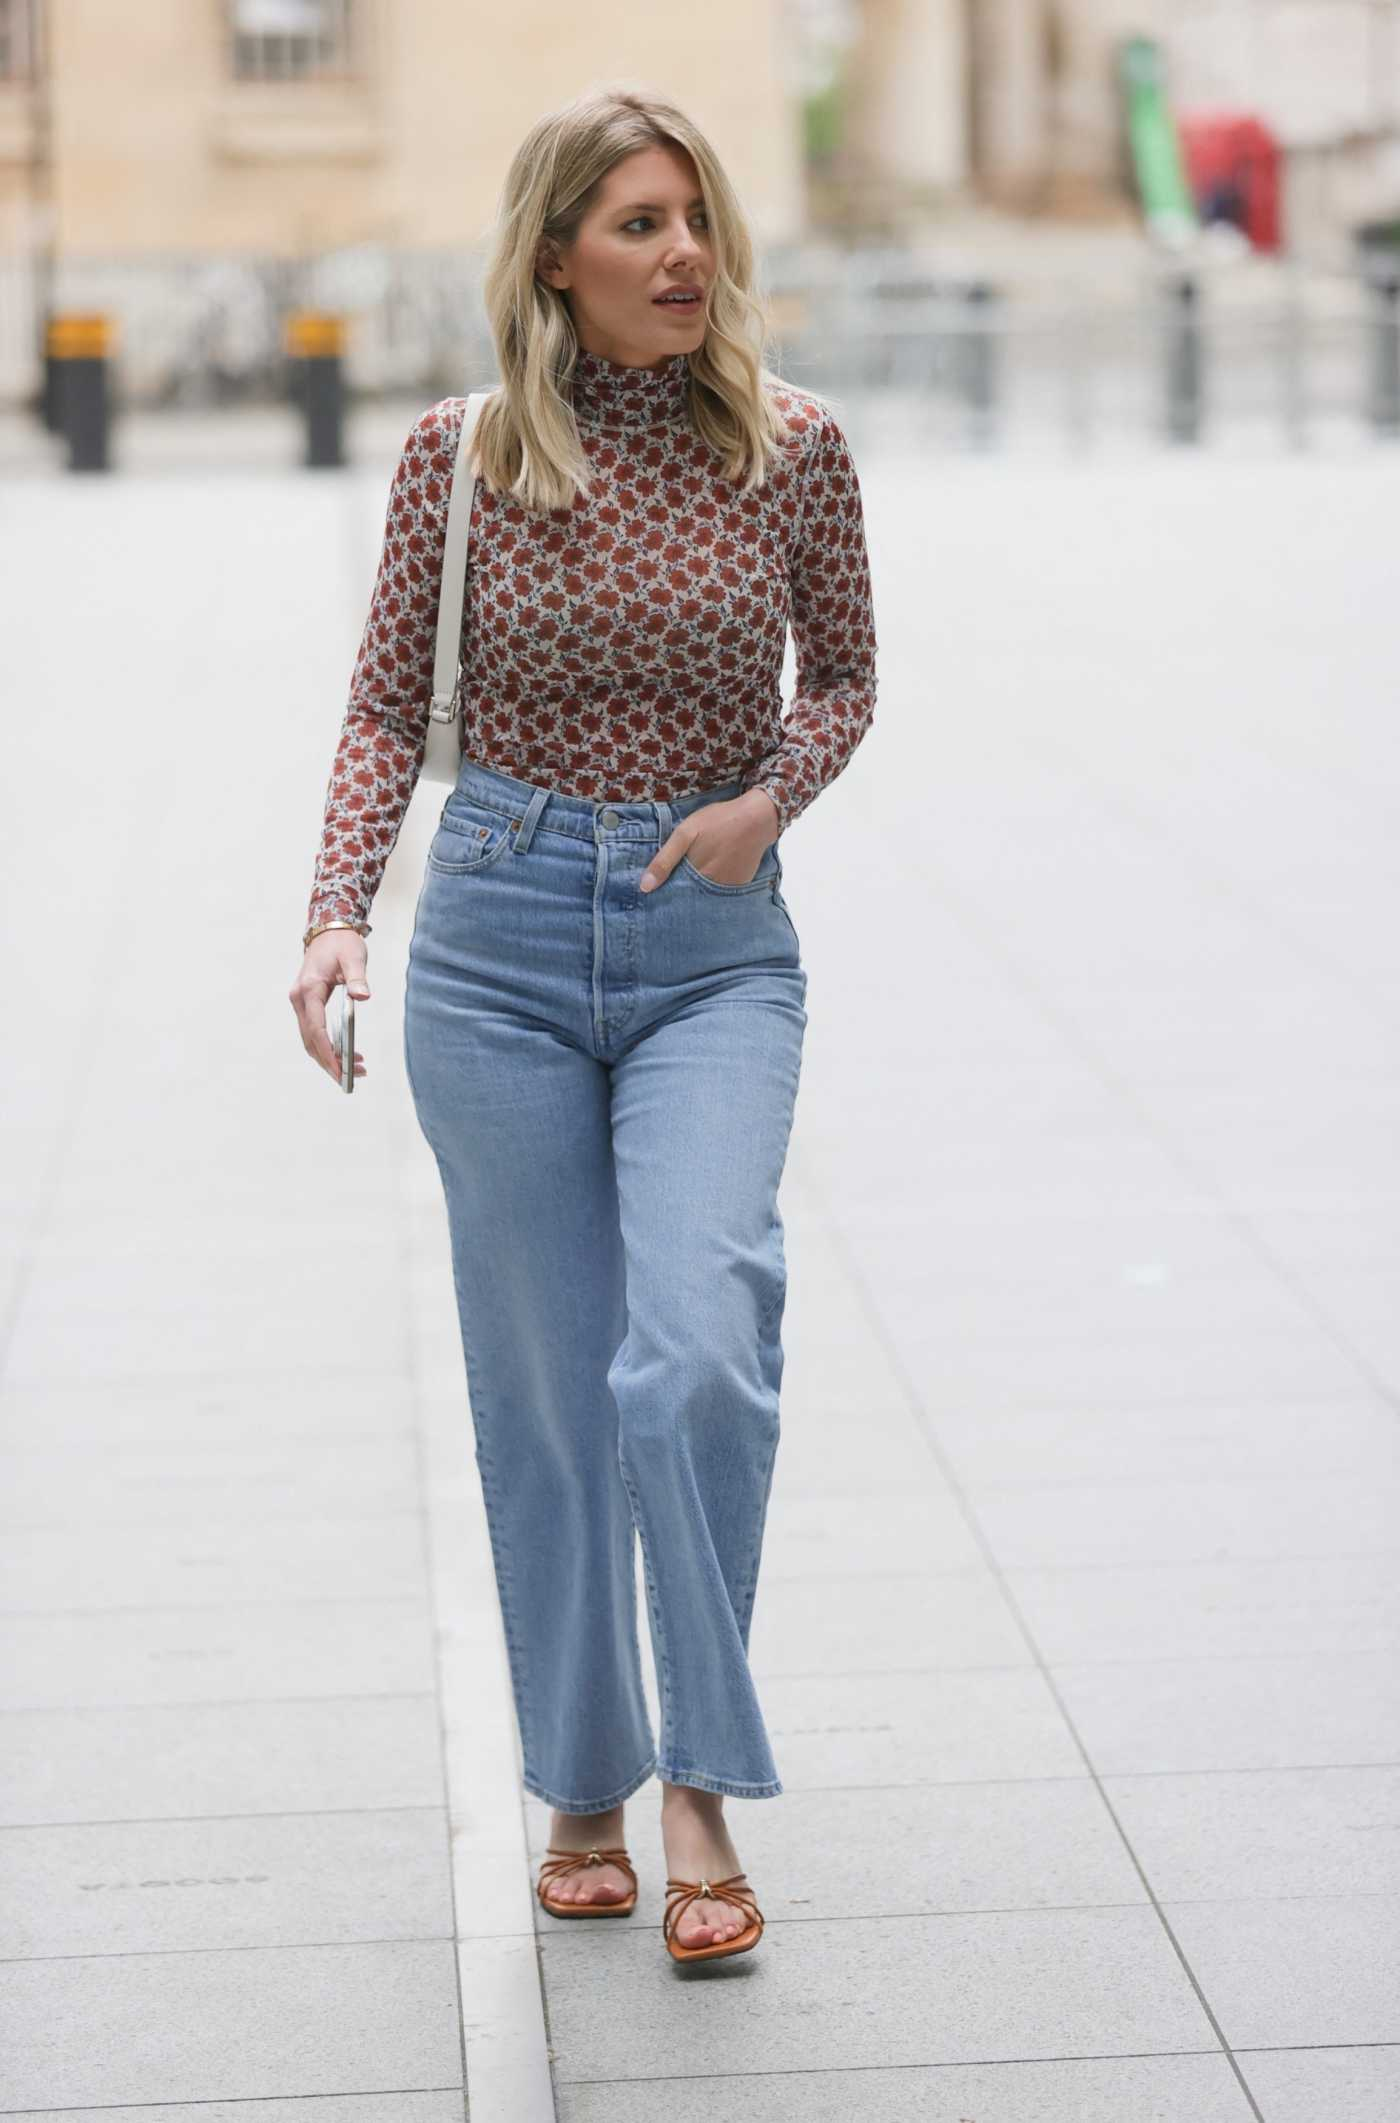 Mollie King in a Patterned Turtleneck Arrives at the BBC Studios in London 05/22/2021